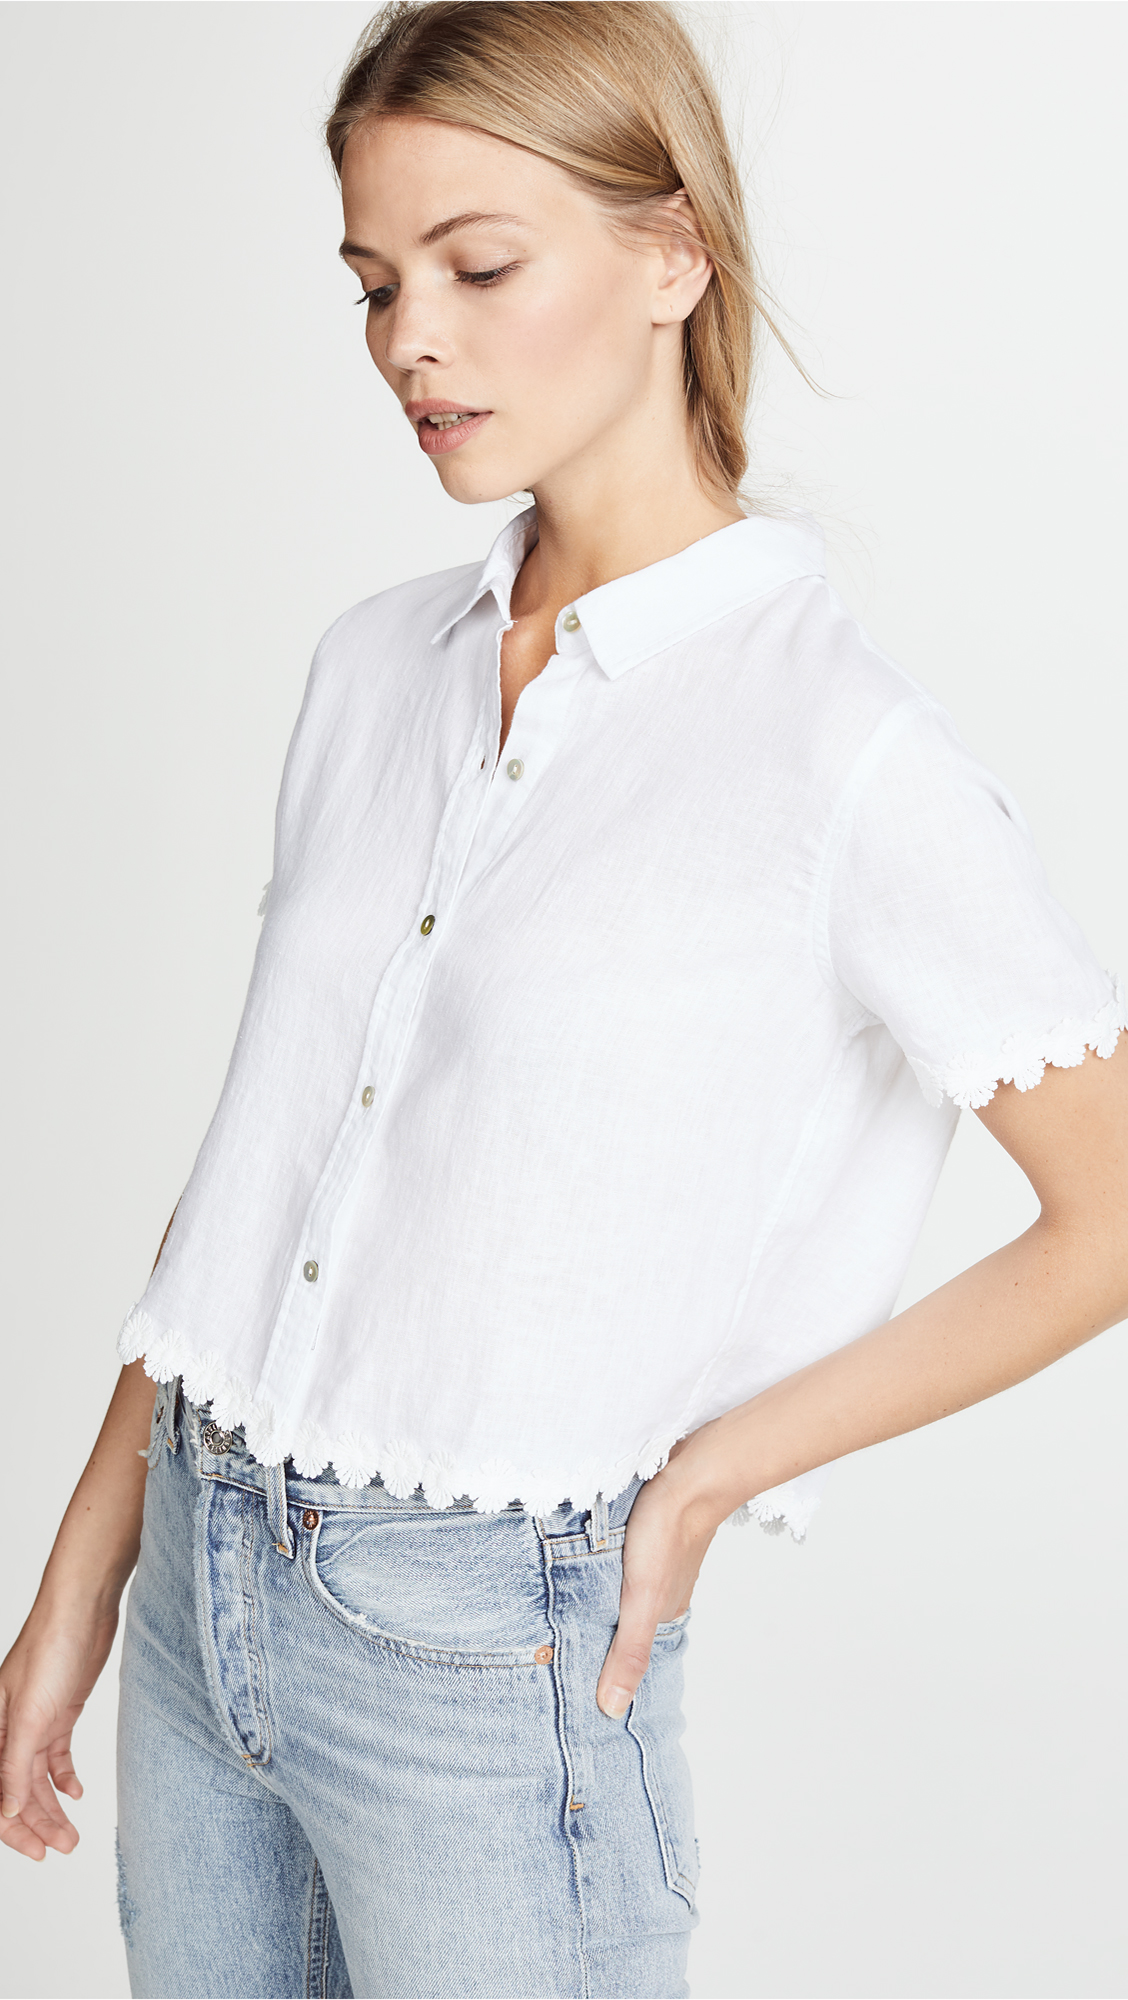 White Short-Sleeve Button Down Shirt with Scalloped Lace Trim